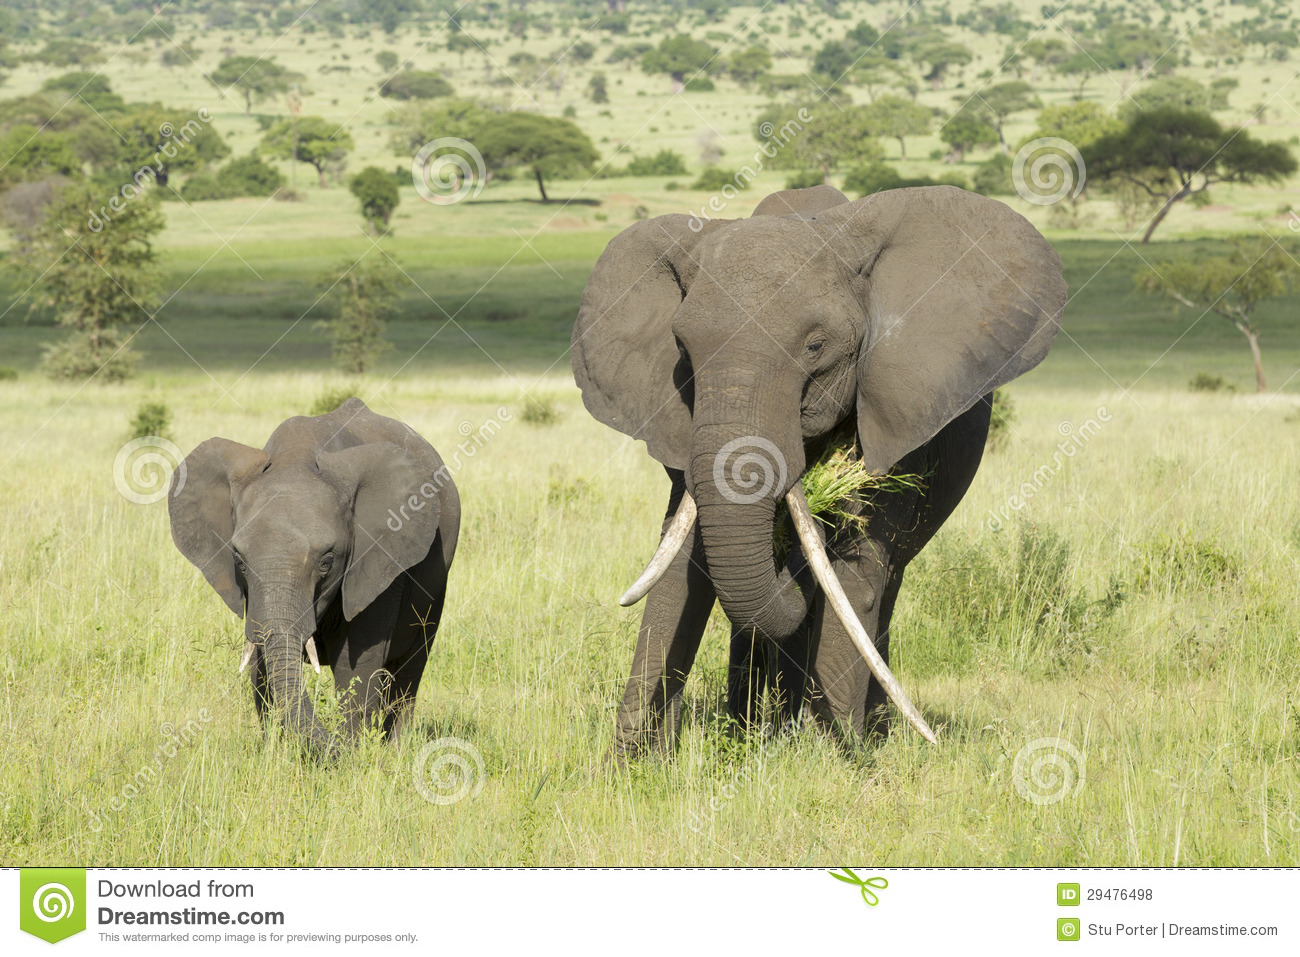 TrekNature | Loxodonta africana Photo